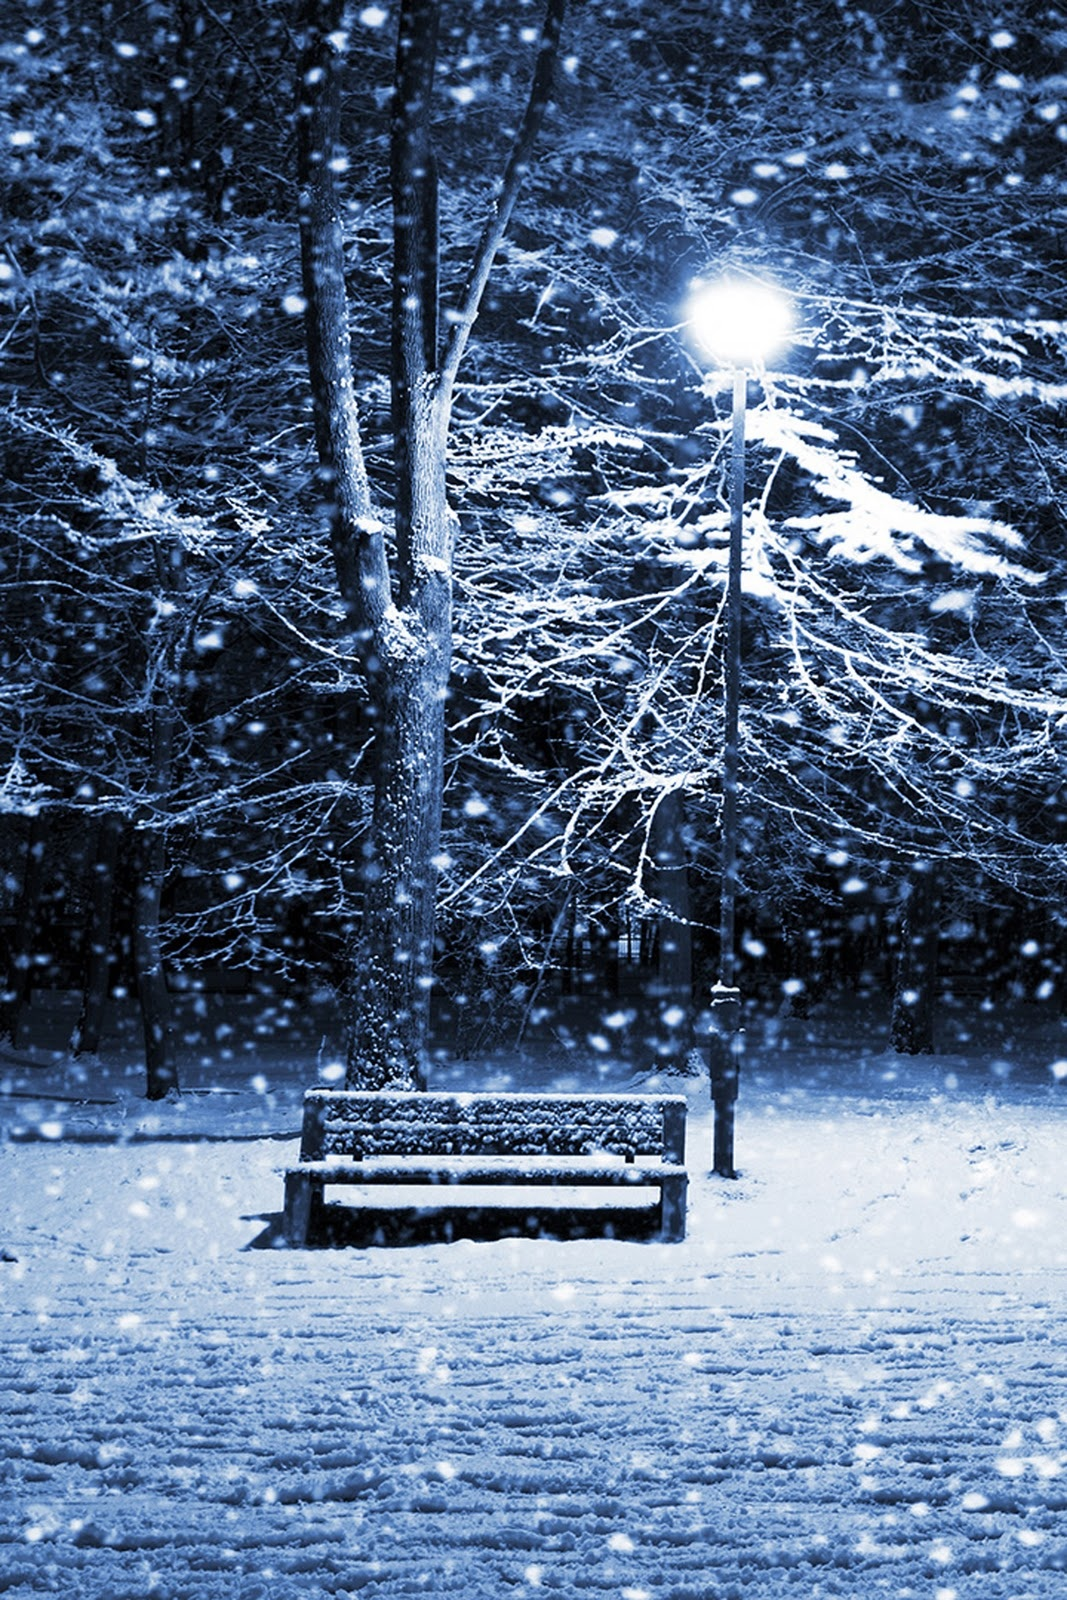 wallpapers images snowy night iphone wallpaper hd wallpaper and